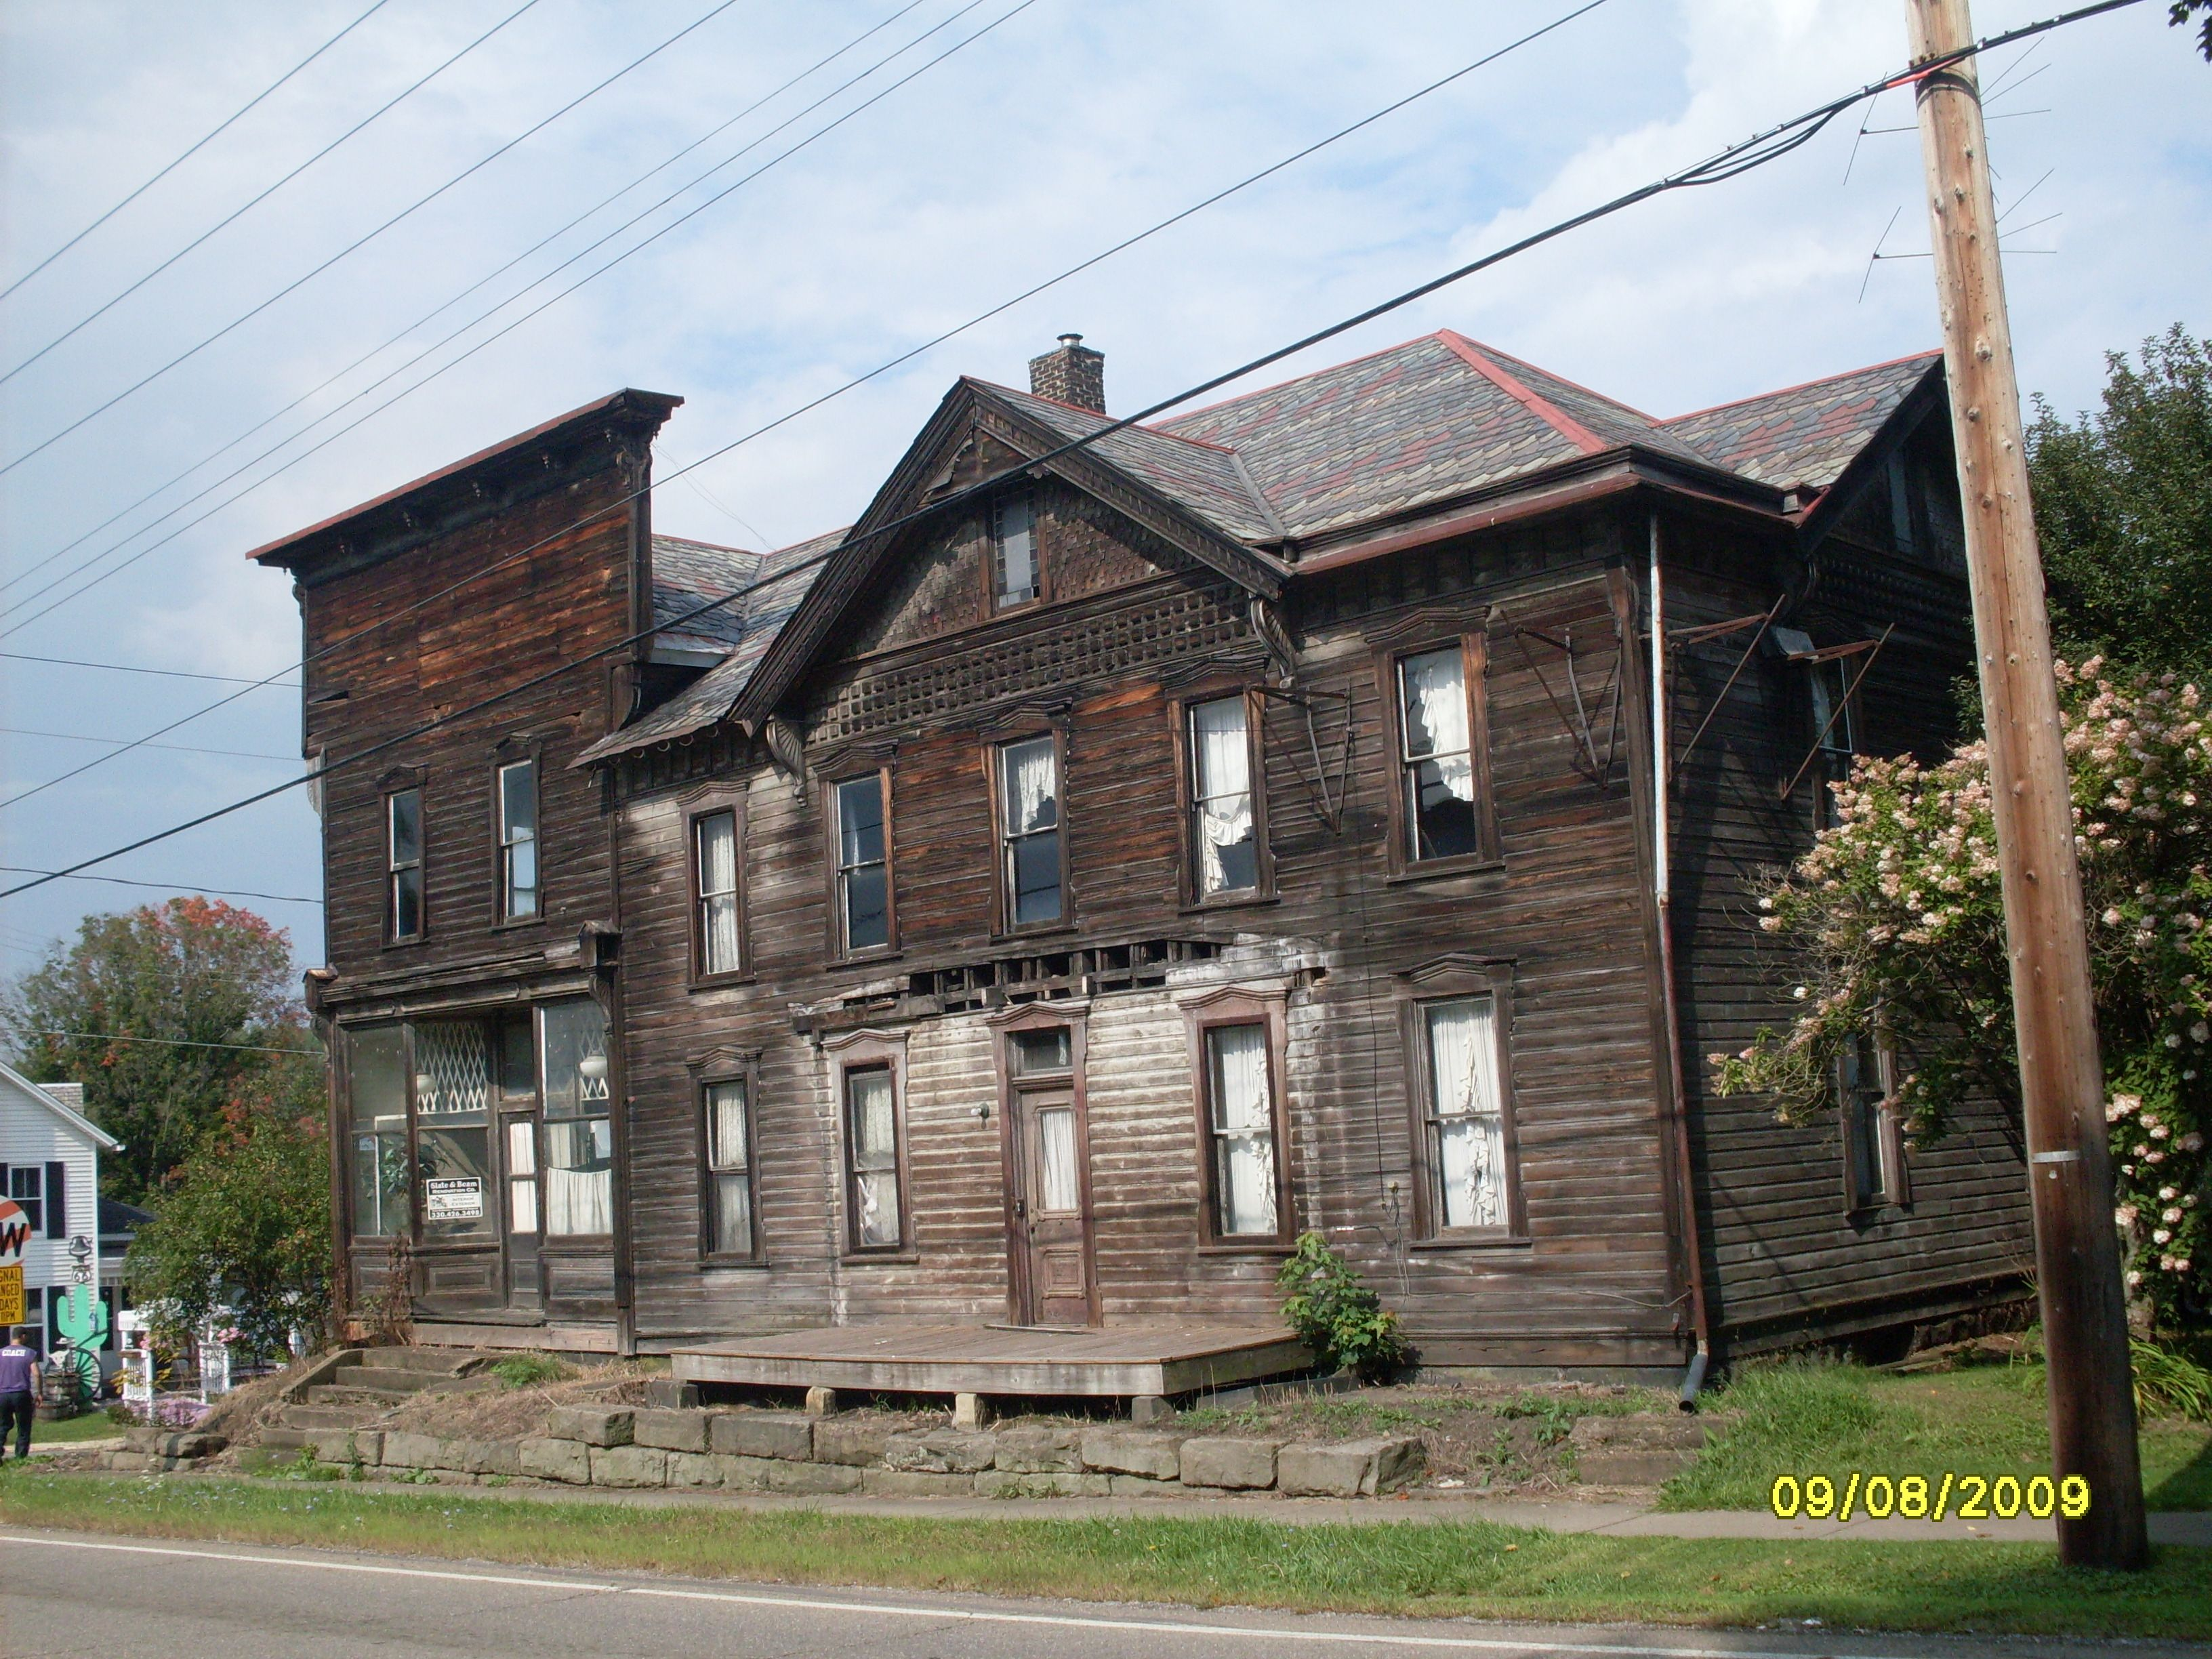 Ohio columbiana county rogers - A General Store And Old Hotel In Rogers Ohio Yes They Are Still